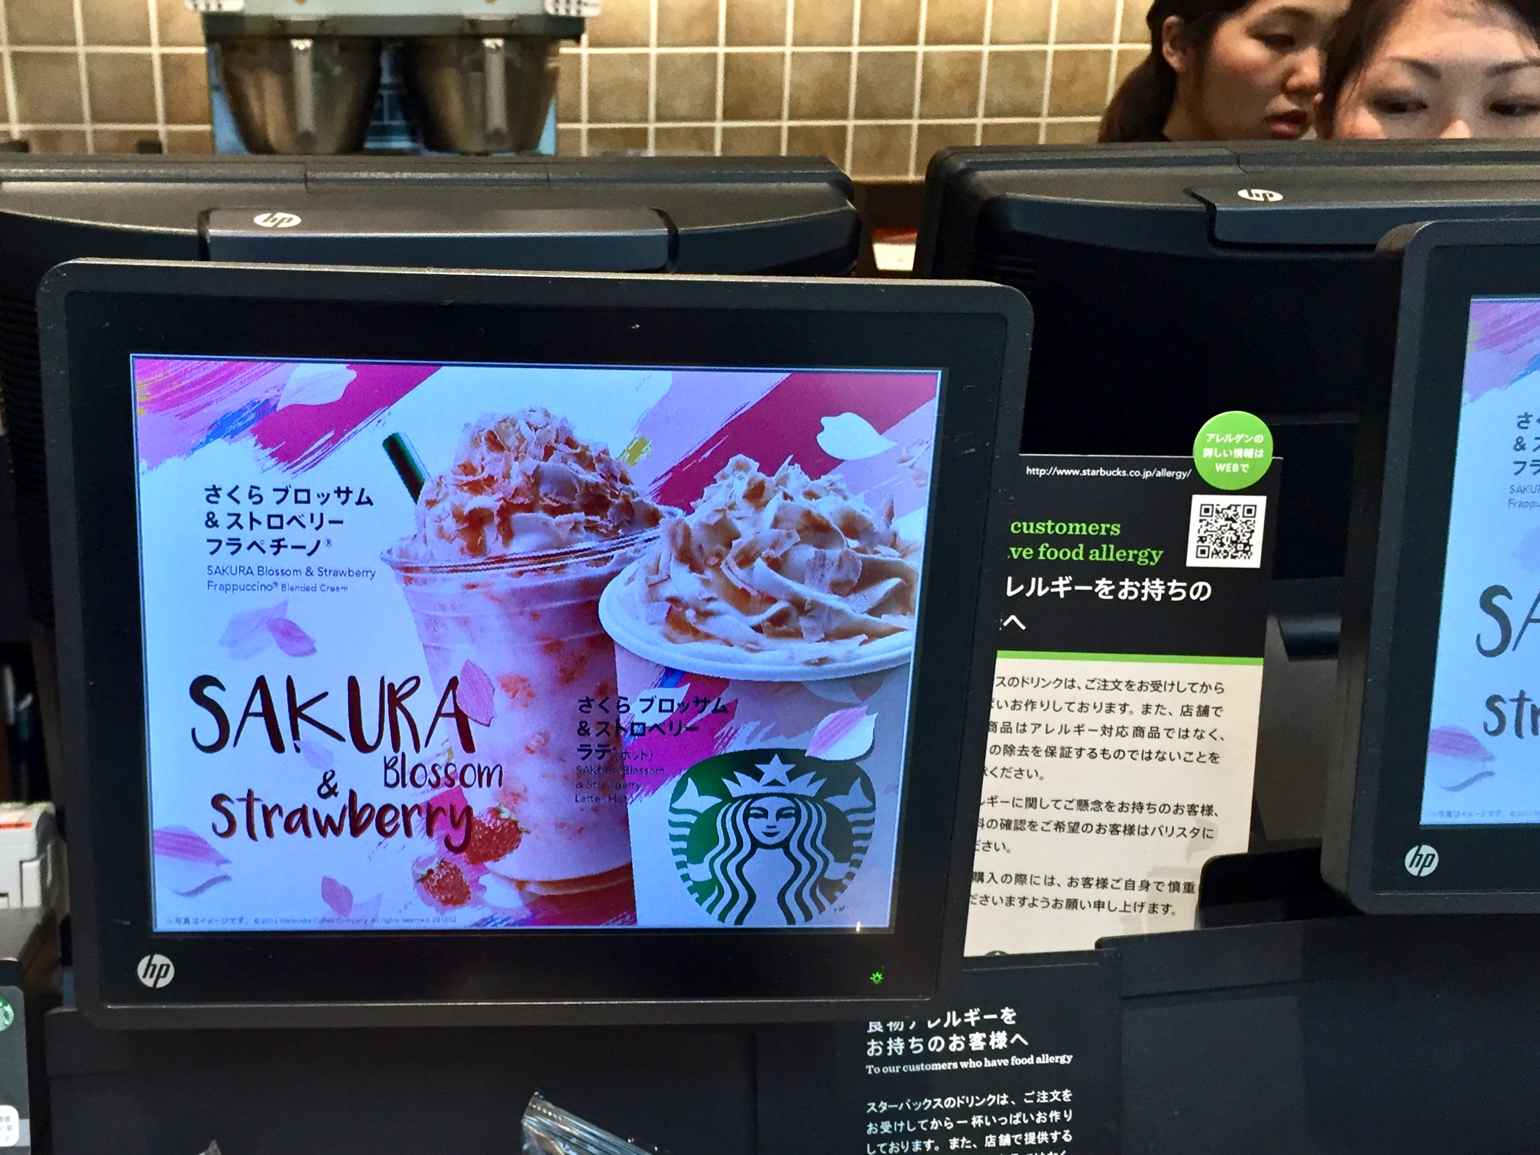 Sakura drinks on display in Starbucks